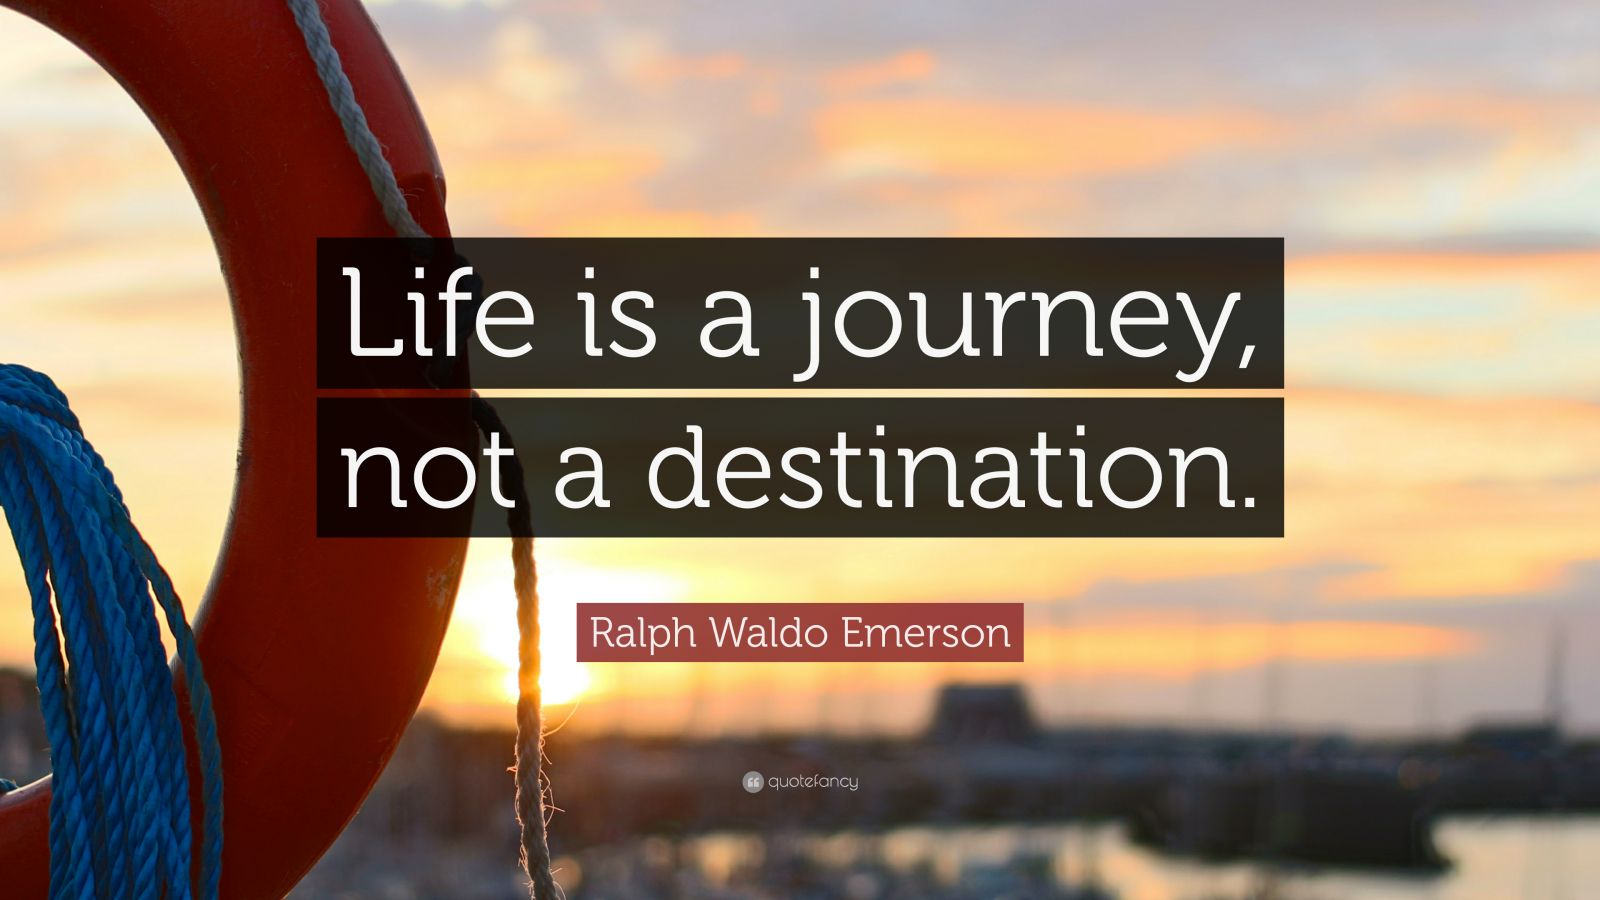 Business Success Quotes Wallpaper Ralph Waldo Emerson Quote Life Is A Journey Not A